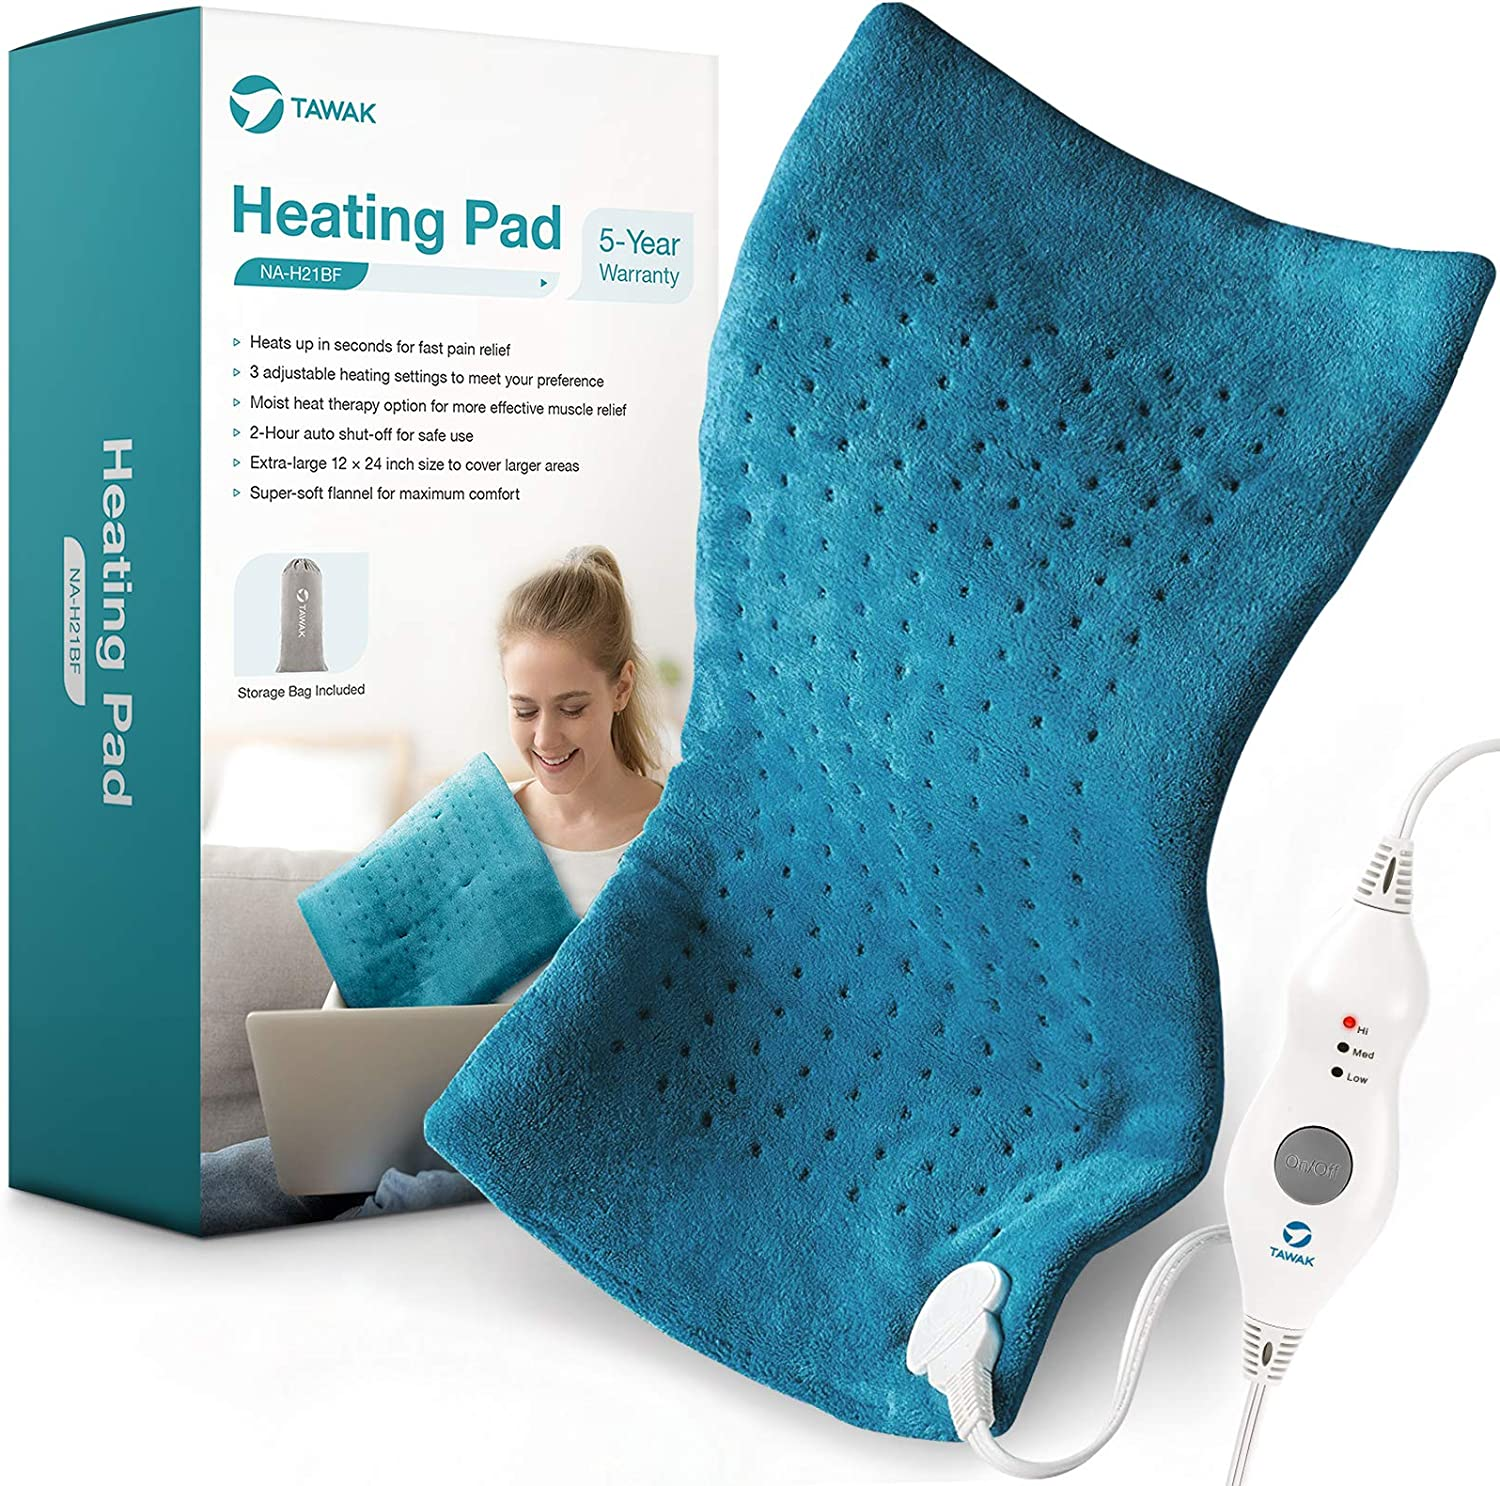 Heating Pad, TAWAK Upgrade Electric Fast Heating Pad for Pain Relief, Dry&Moist Heat Therapy Option Heating Pad with Adjustable Temperature Setting and 2 Hours Auto-Off, Large Size Soft Heating Pad